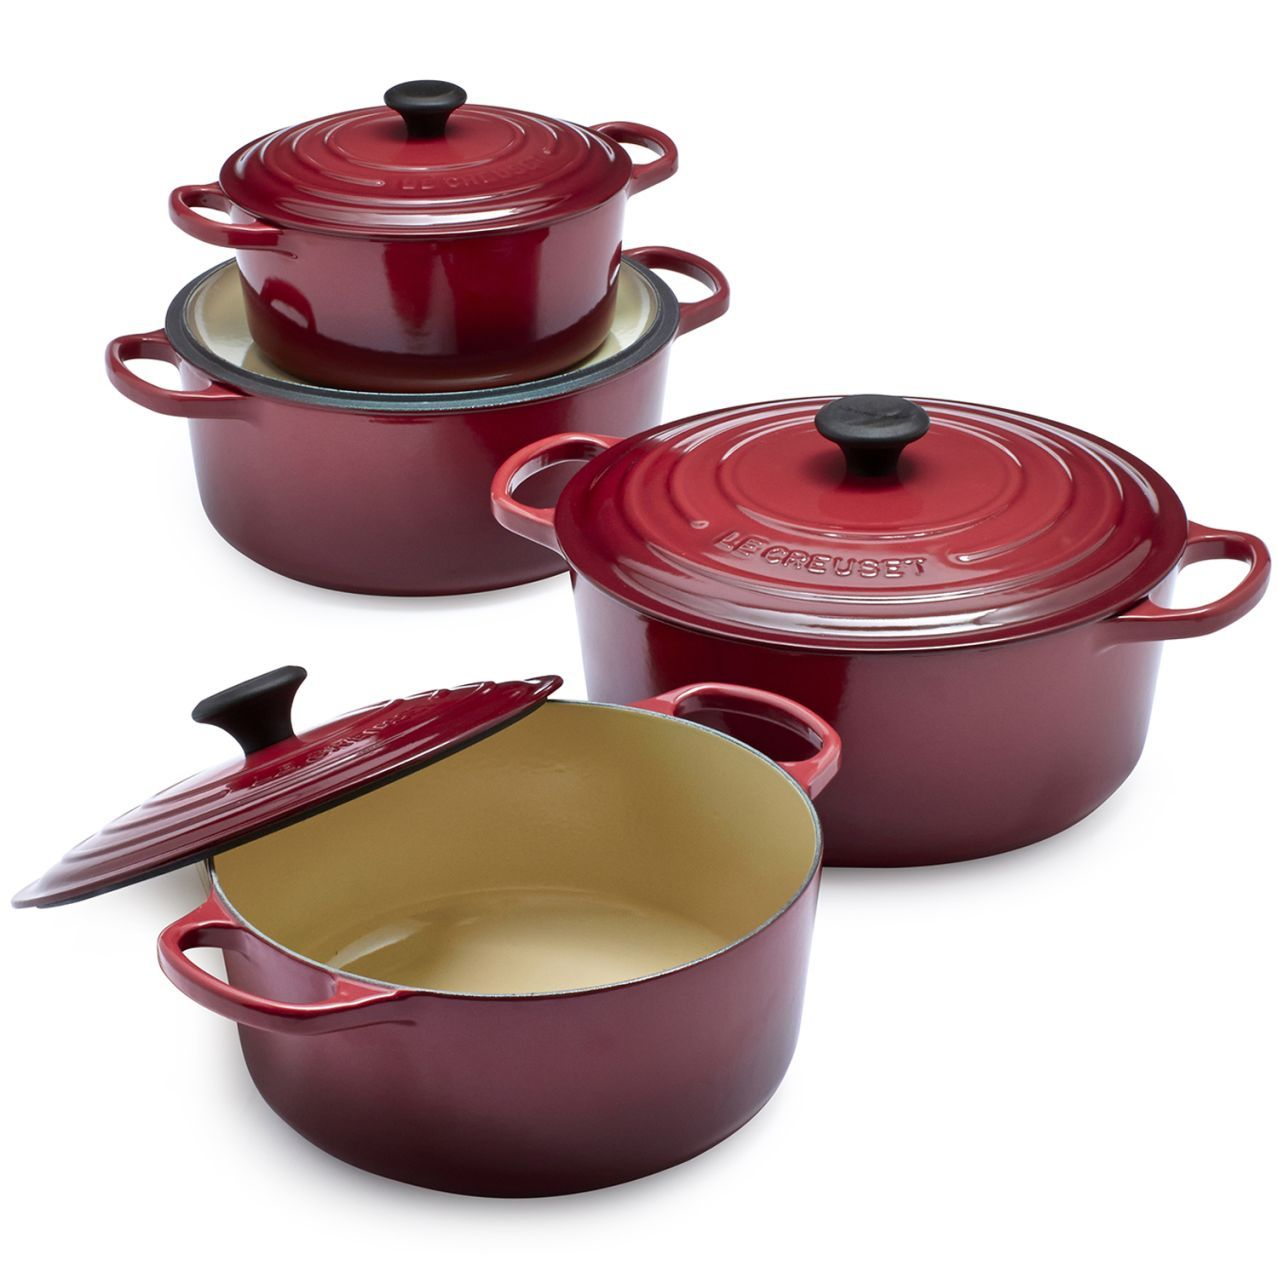 le creuset signature round dutch oven 9 qt oven. Black Bedroom Furniture Sets. Home Design Ideas